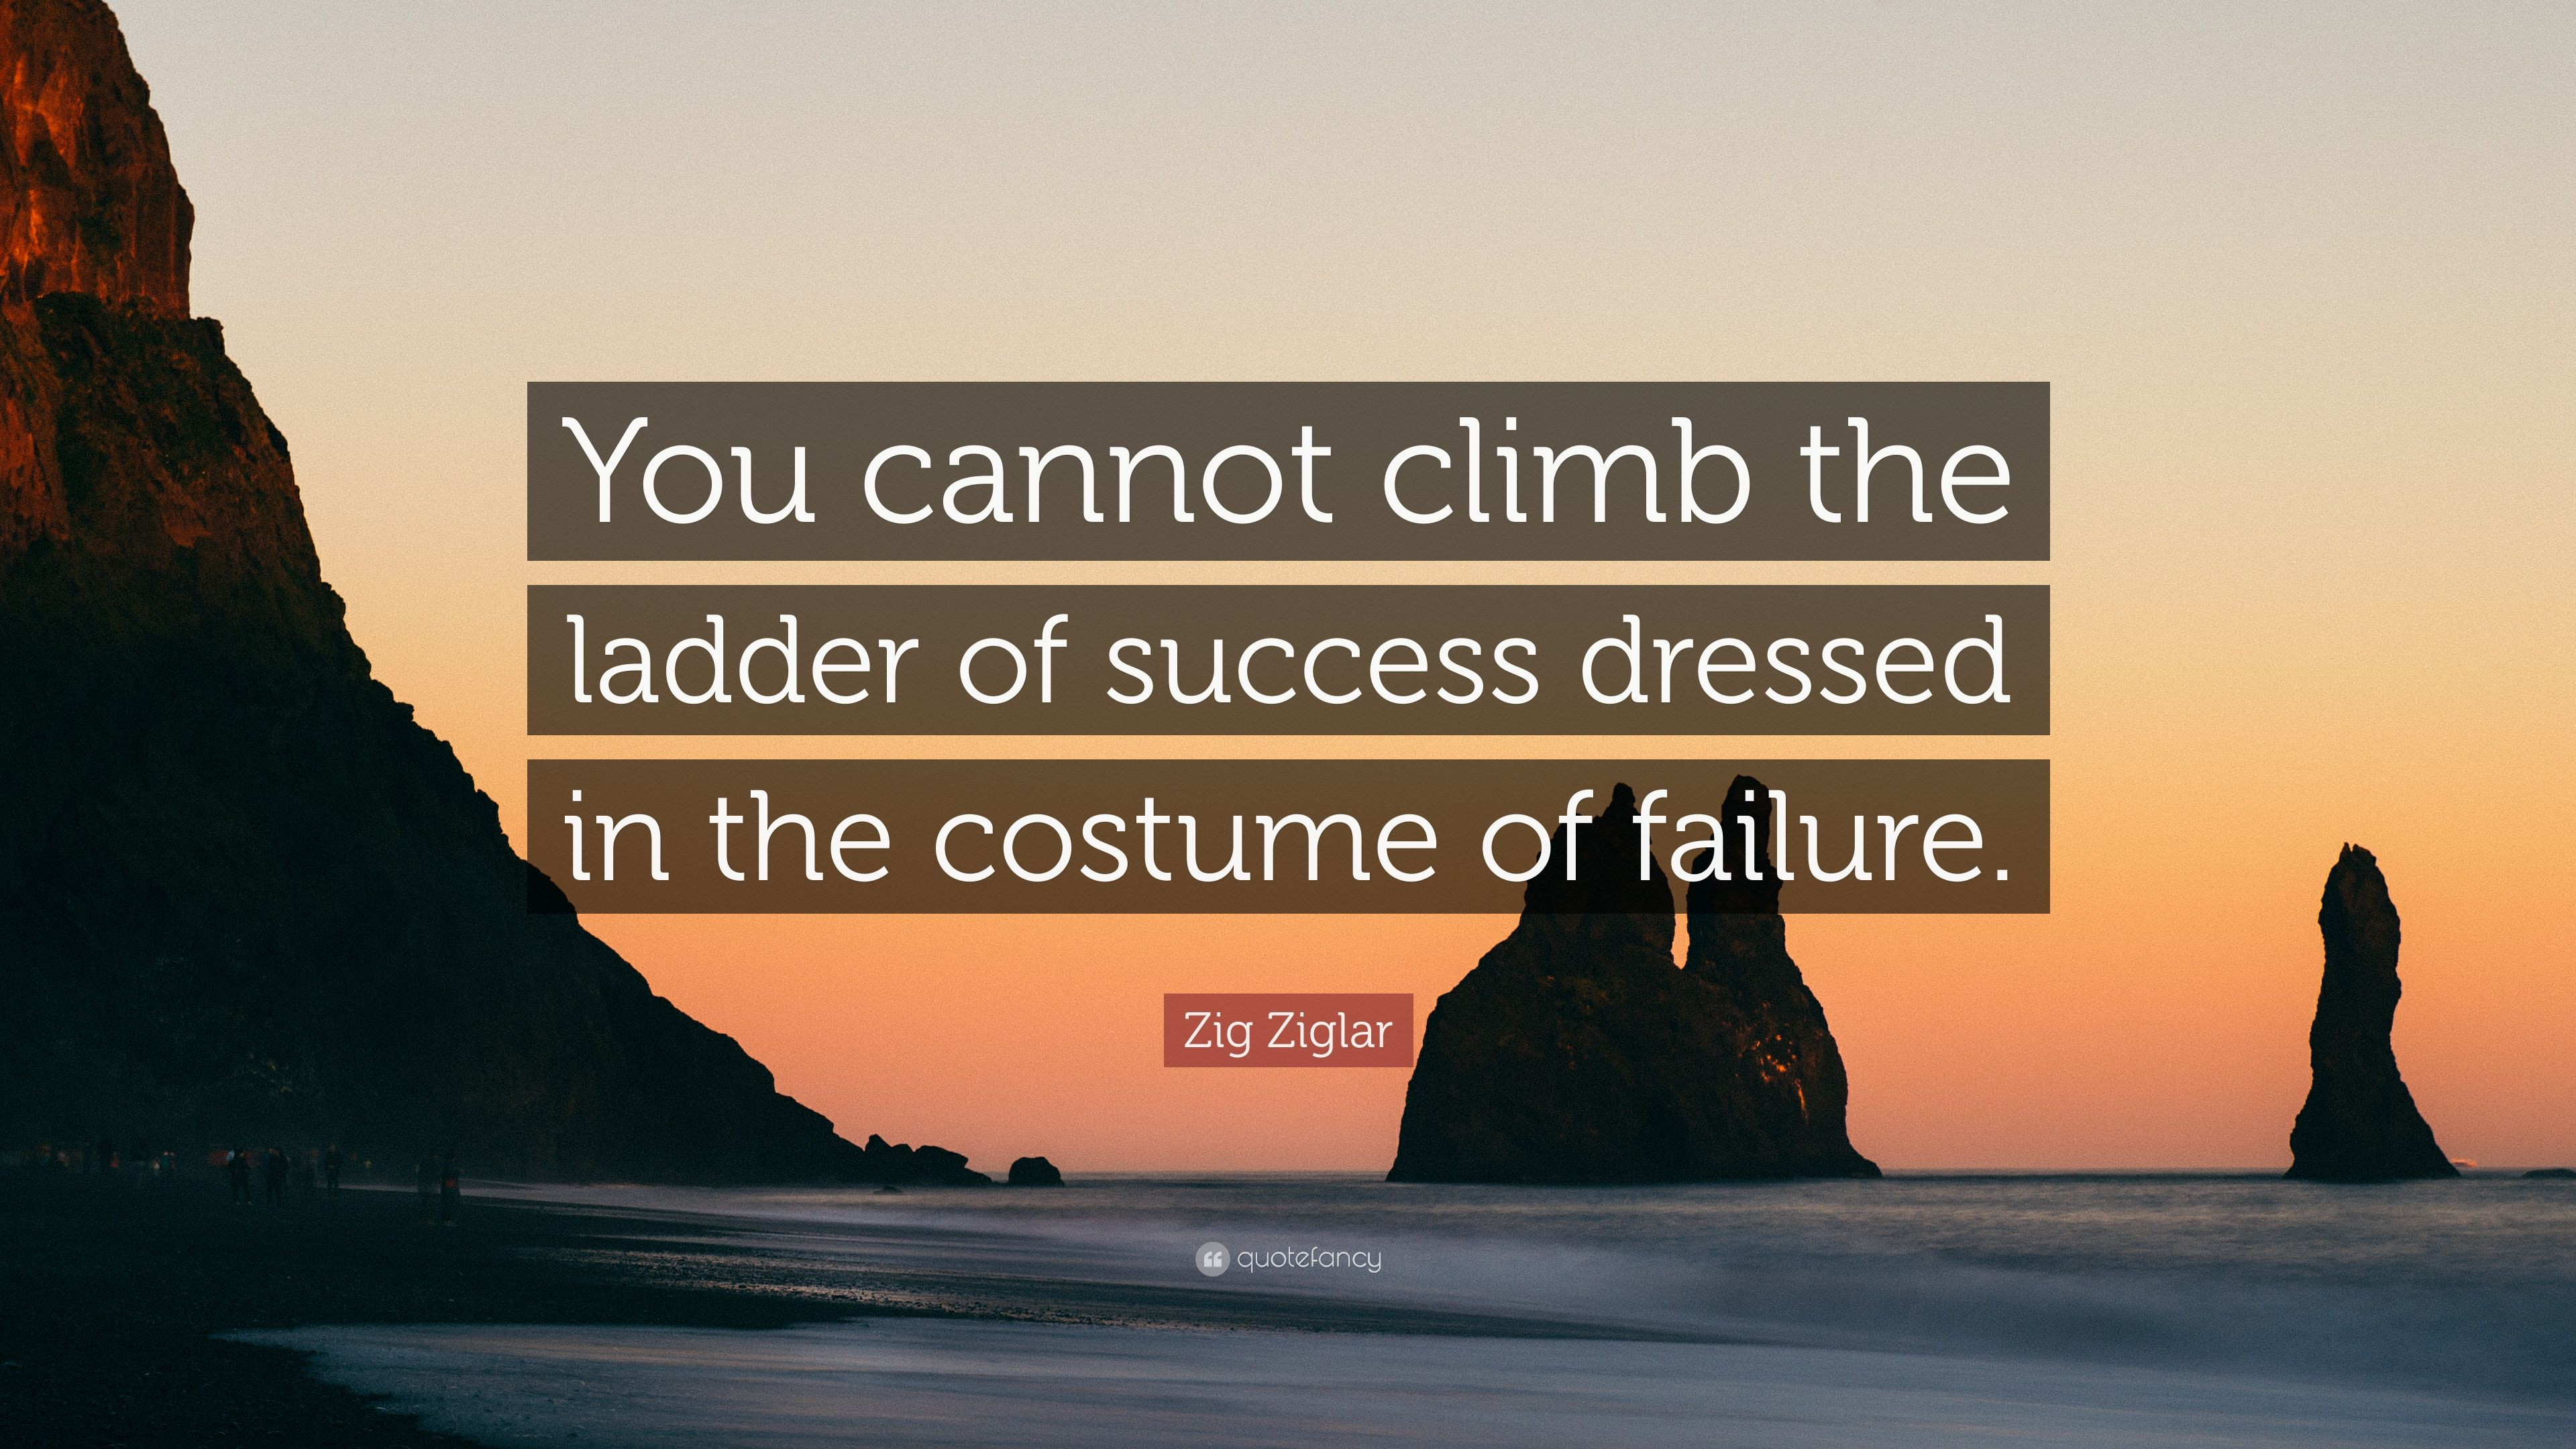 Zig Ziglar Quote You Cannot Climb The Ladder Of Success Dressed In Costume